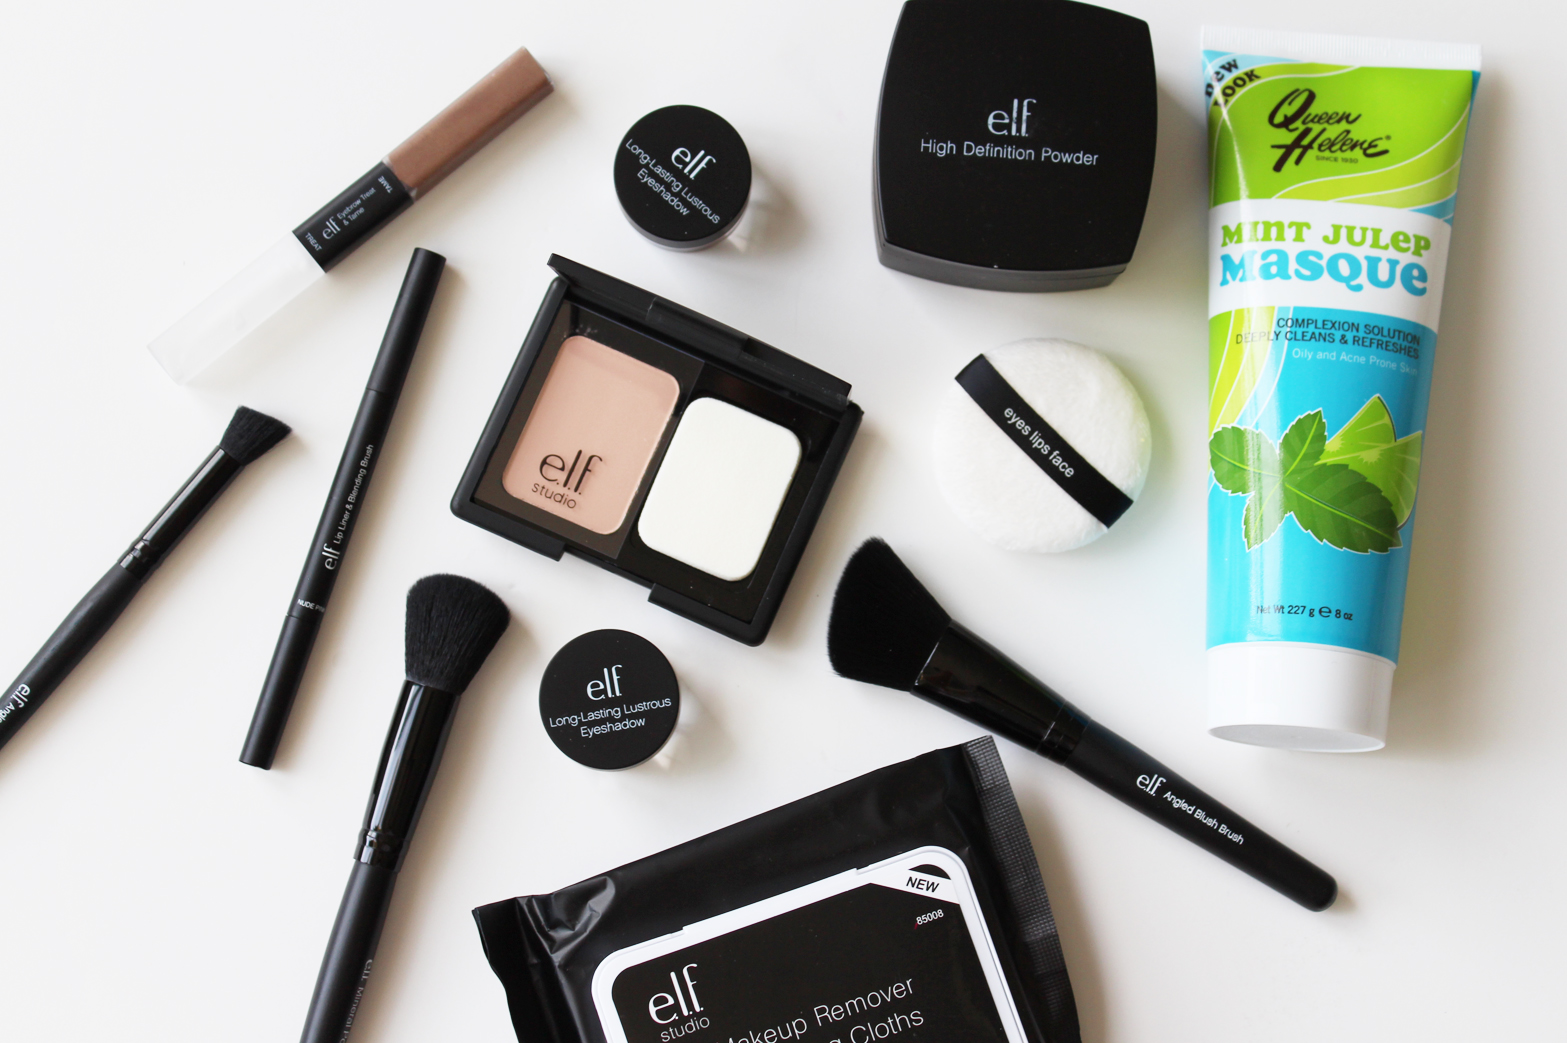 iHERB HAUL | e.l.f. Studio, Queen Helene + More - Swatches + First Impressions - CassandraMyee